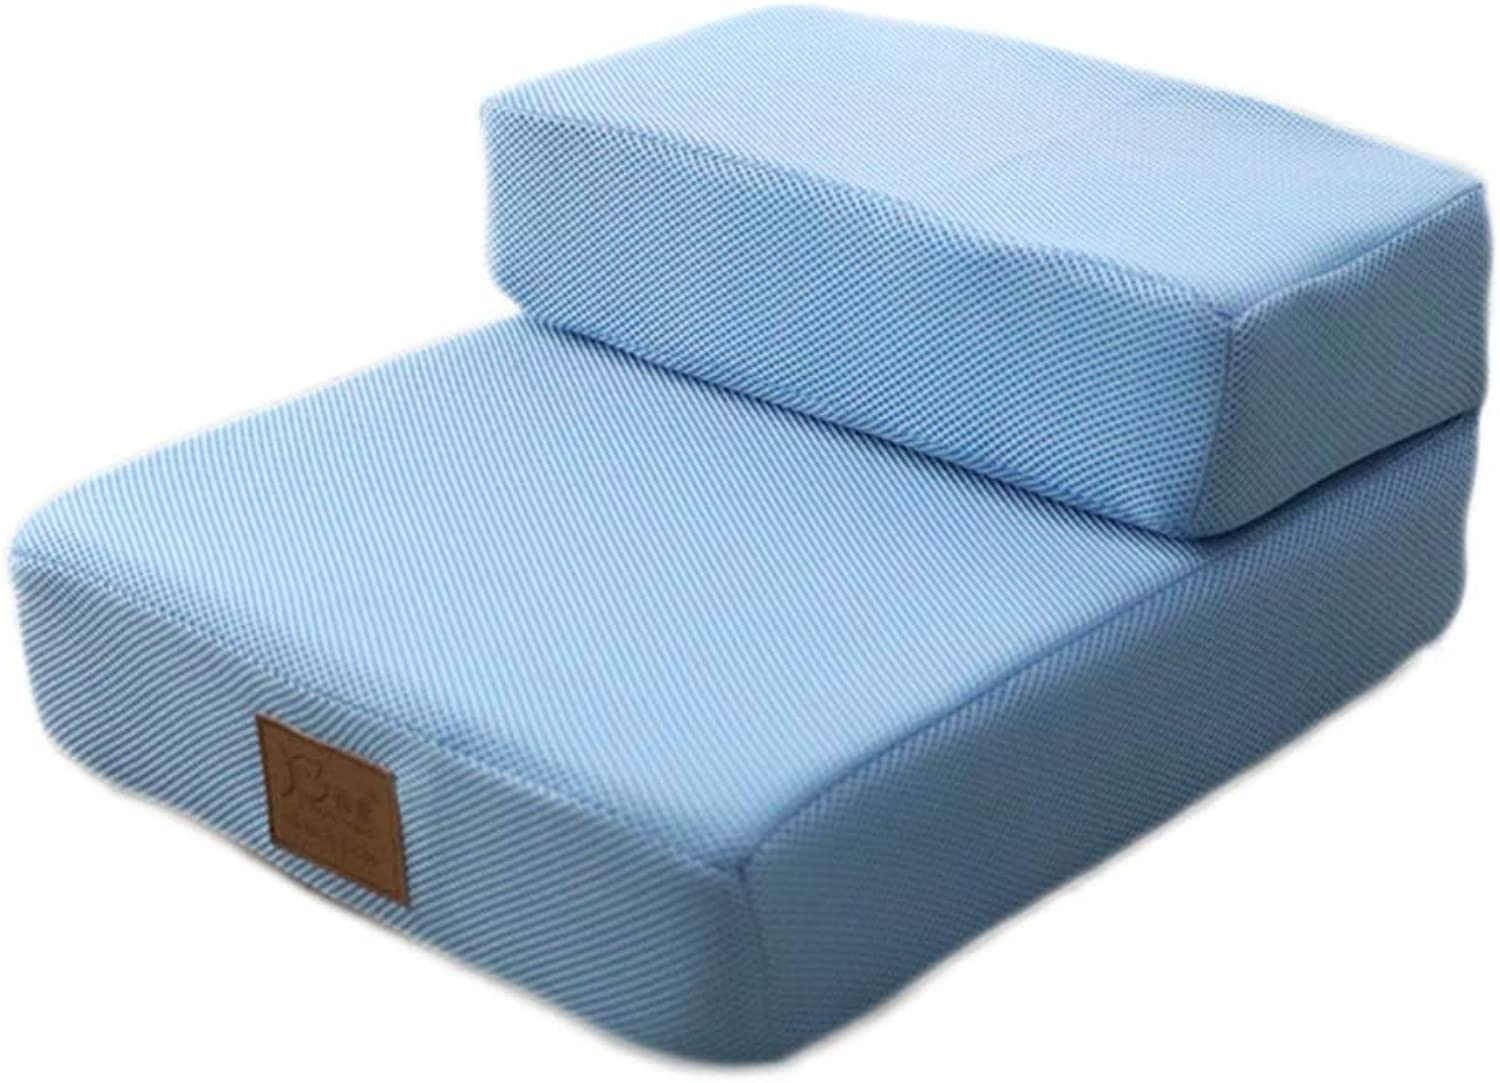 Pet Stairs Dog Bed Ladder Cat Ramp  2 3 Tier Foldable for Tall Sofa,Removable Washable Cover (color   bluee, Size   2STEP)